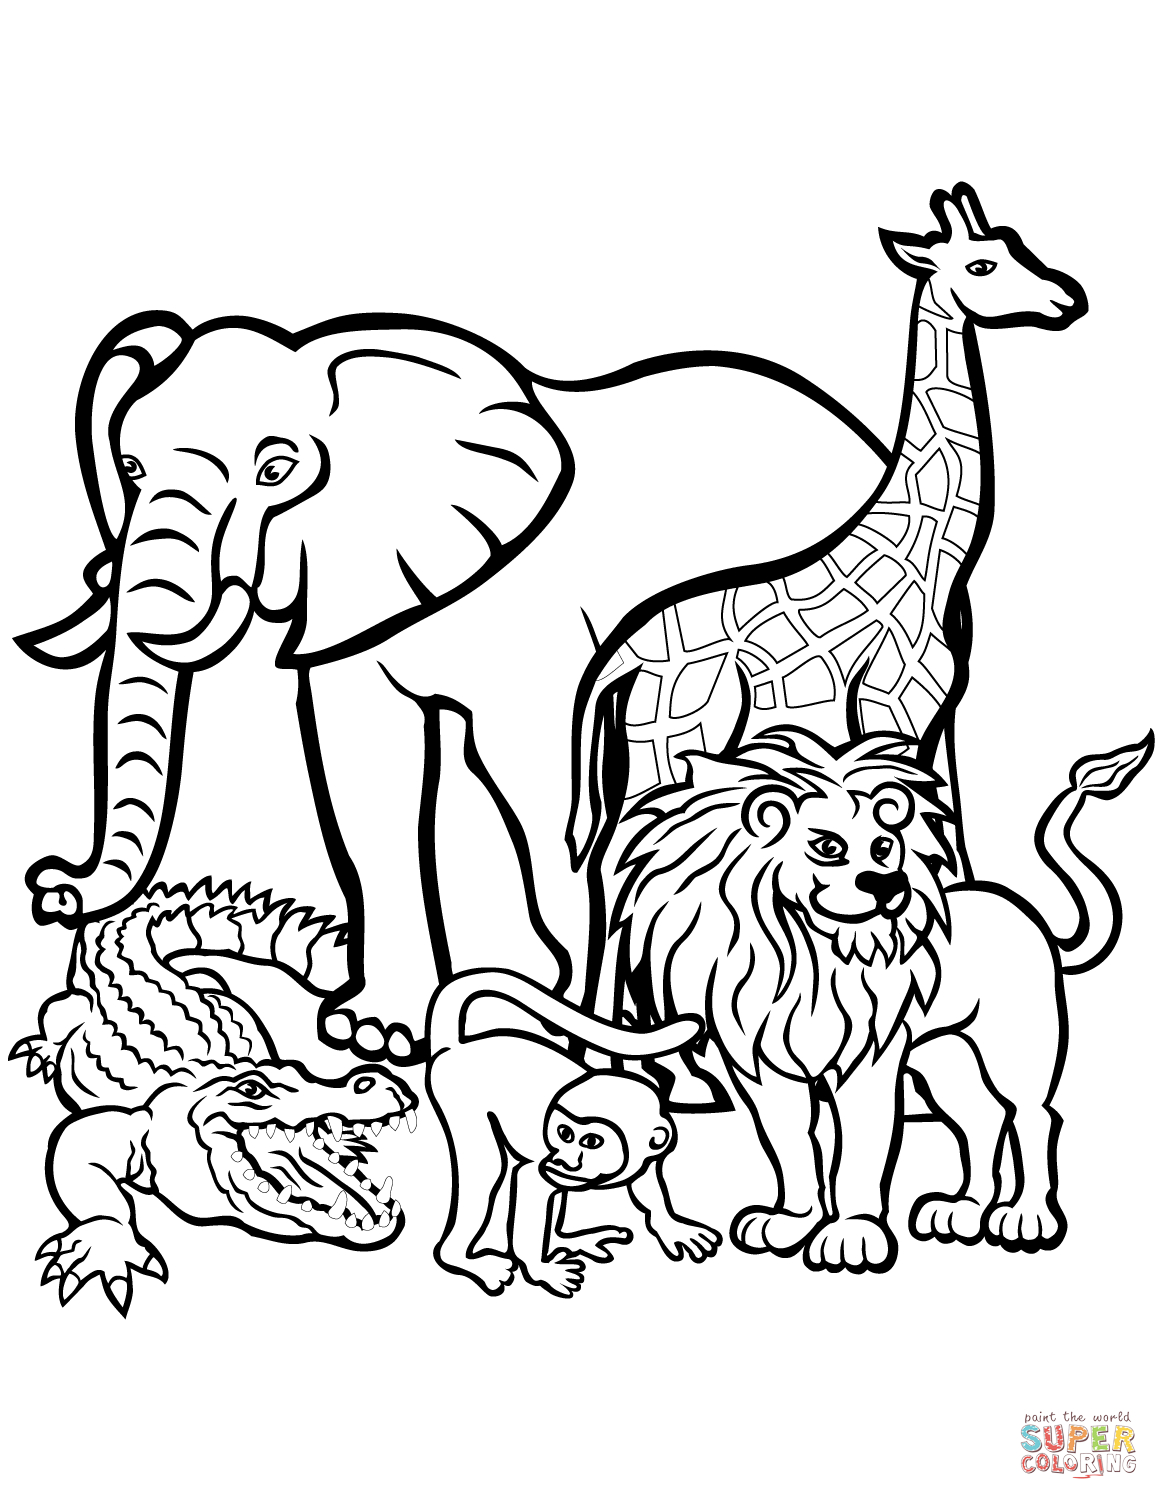 25+ Elegant Image Of Wild Animal Coloring Pages - Birijus.com